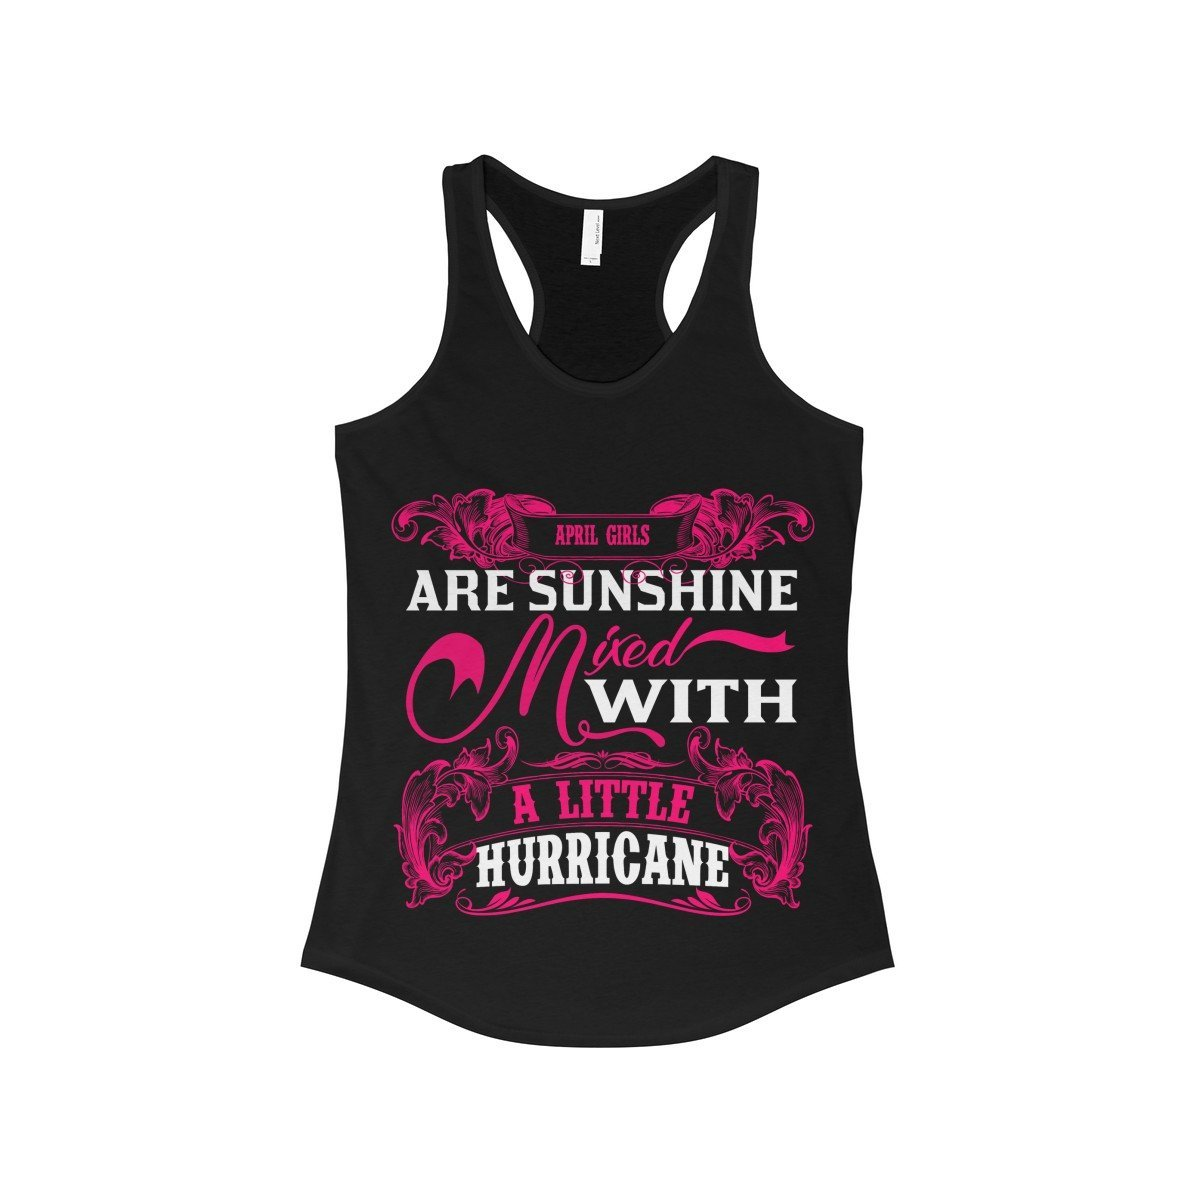 FavoryStore April Girls Are Sunshine Mixed With a Little Hurricane Tank Top